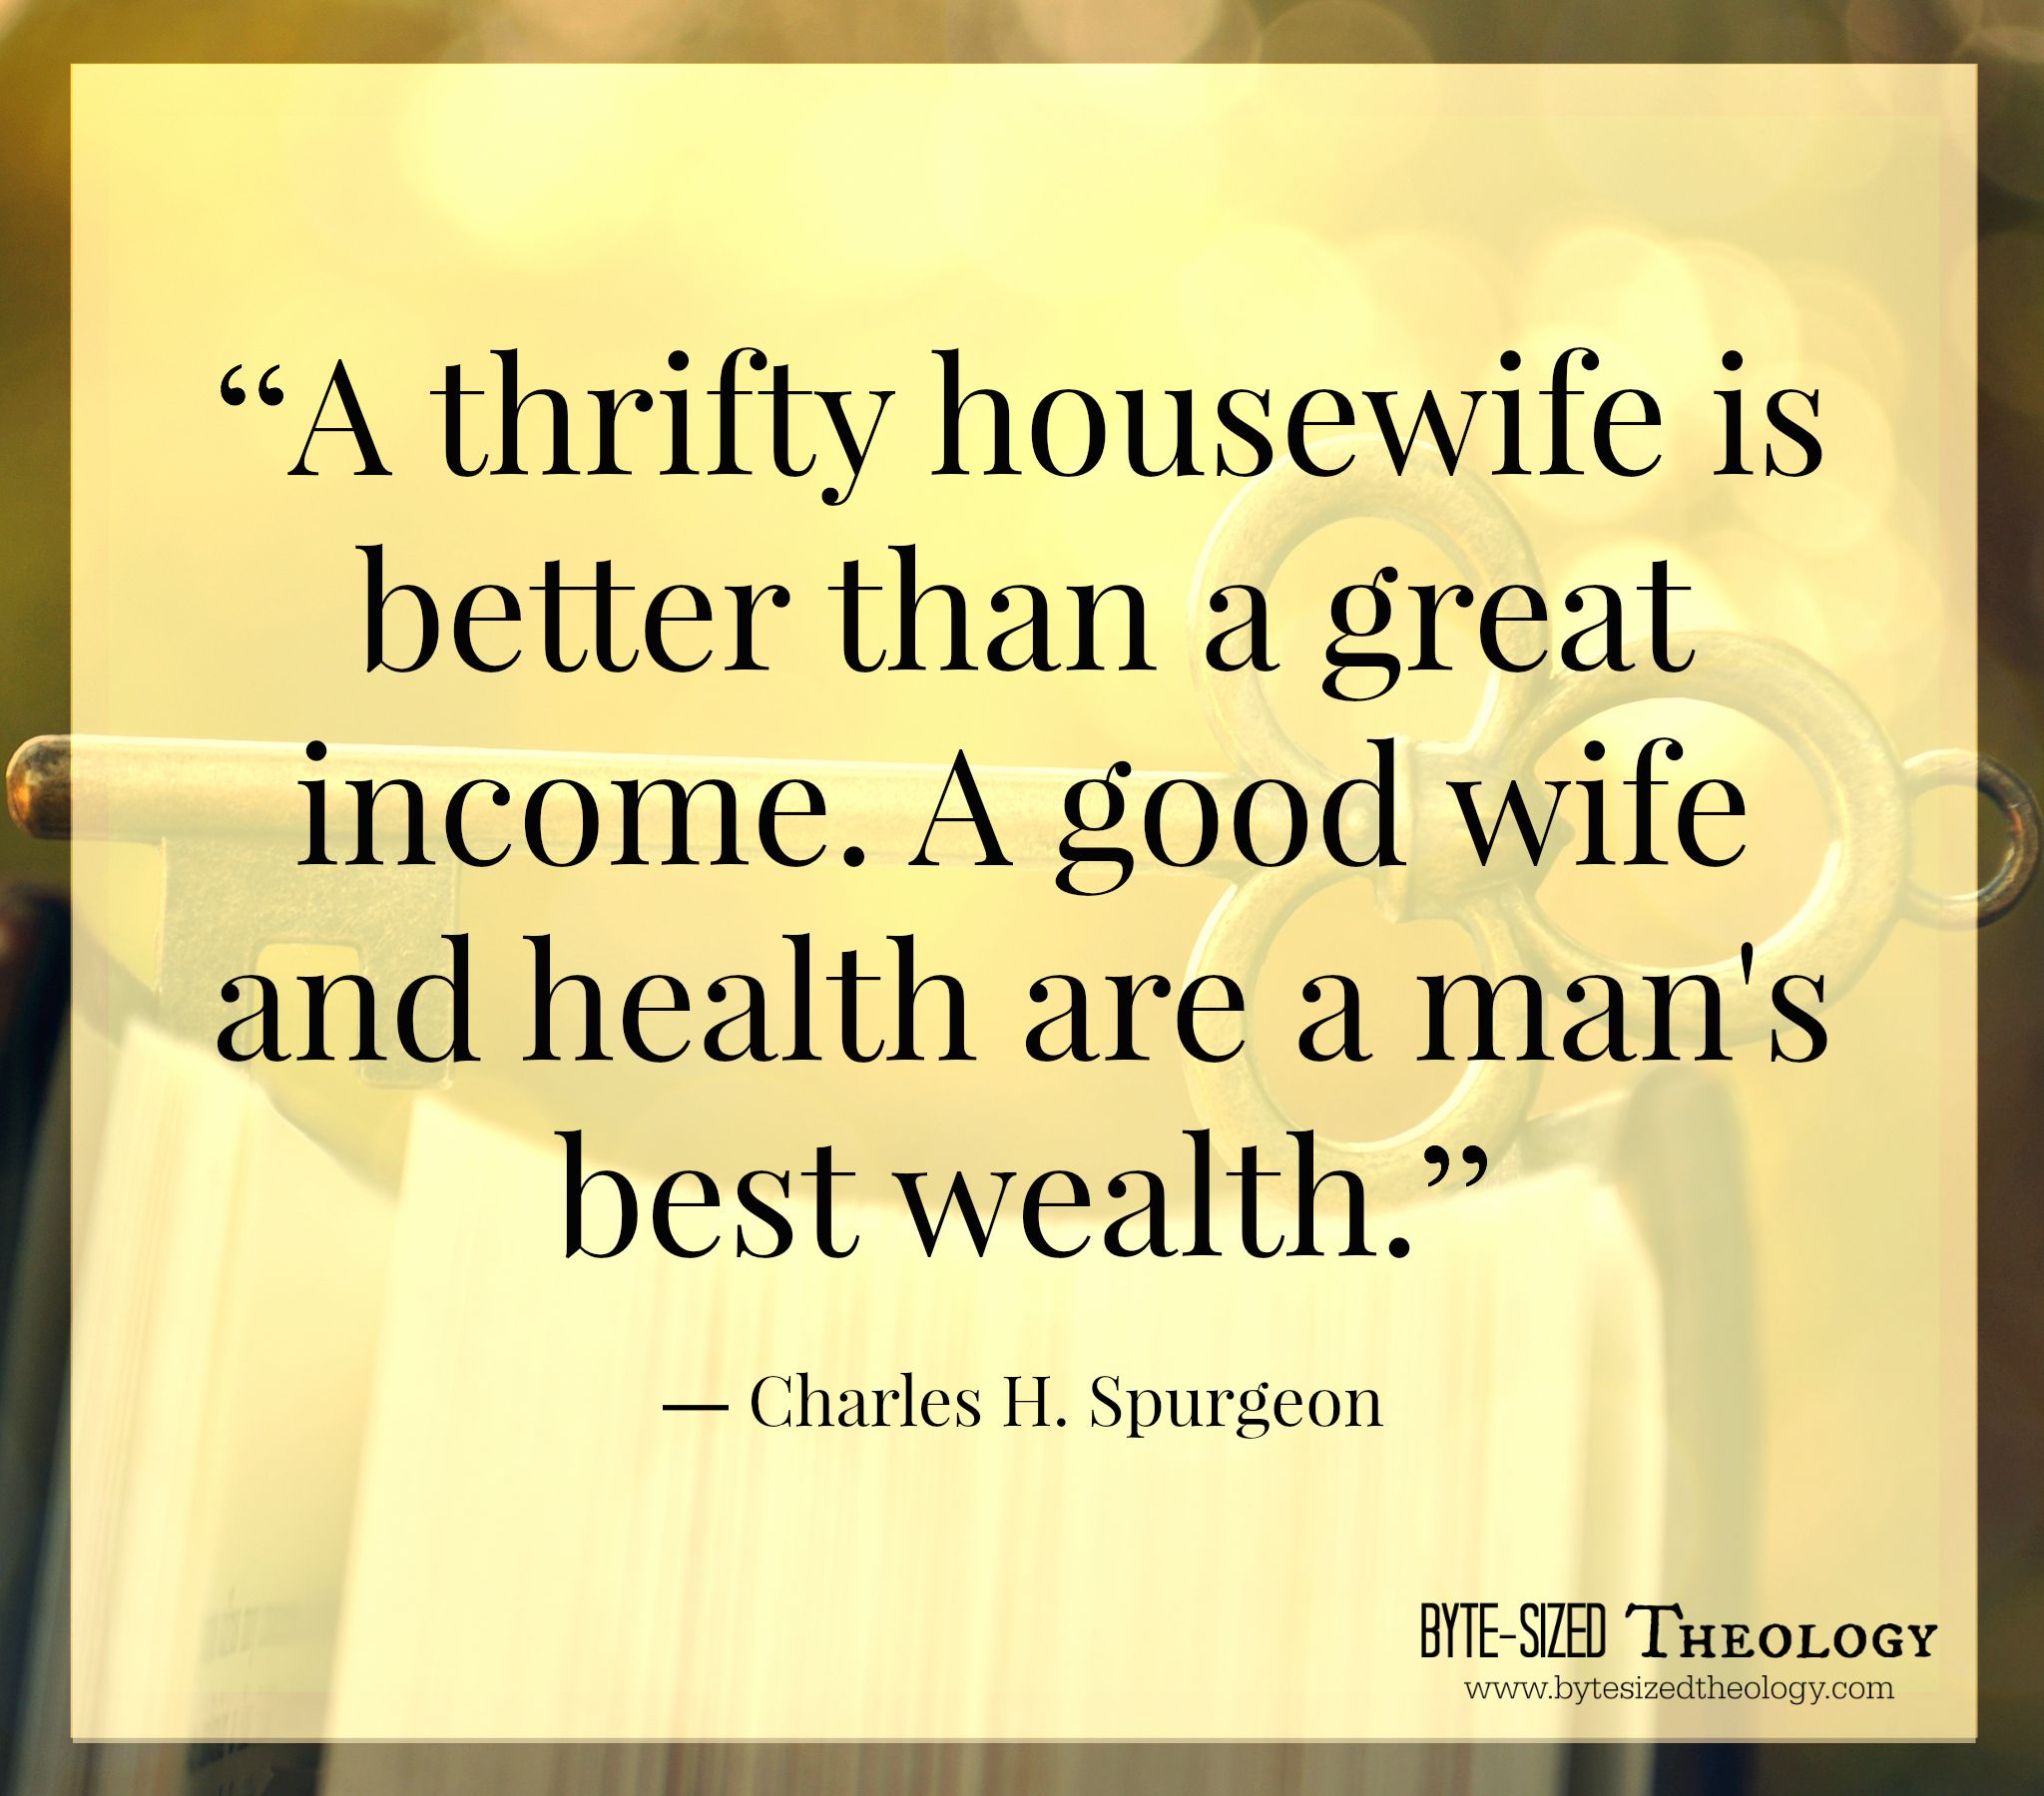 A Thrifty Housewife... Find More Encouragement At Byte